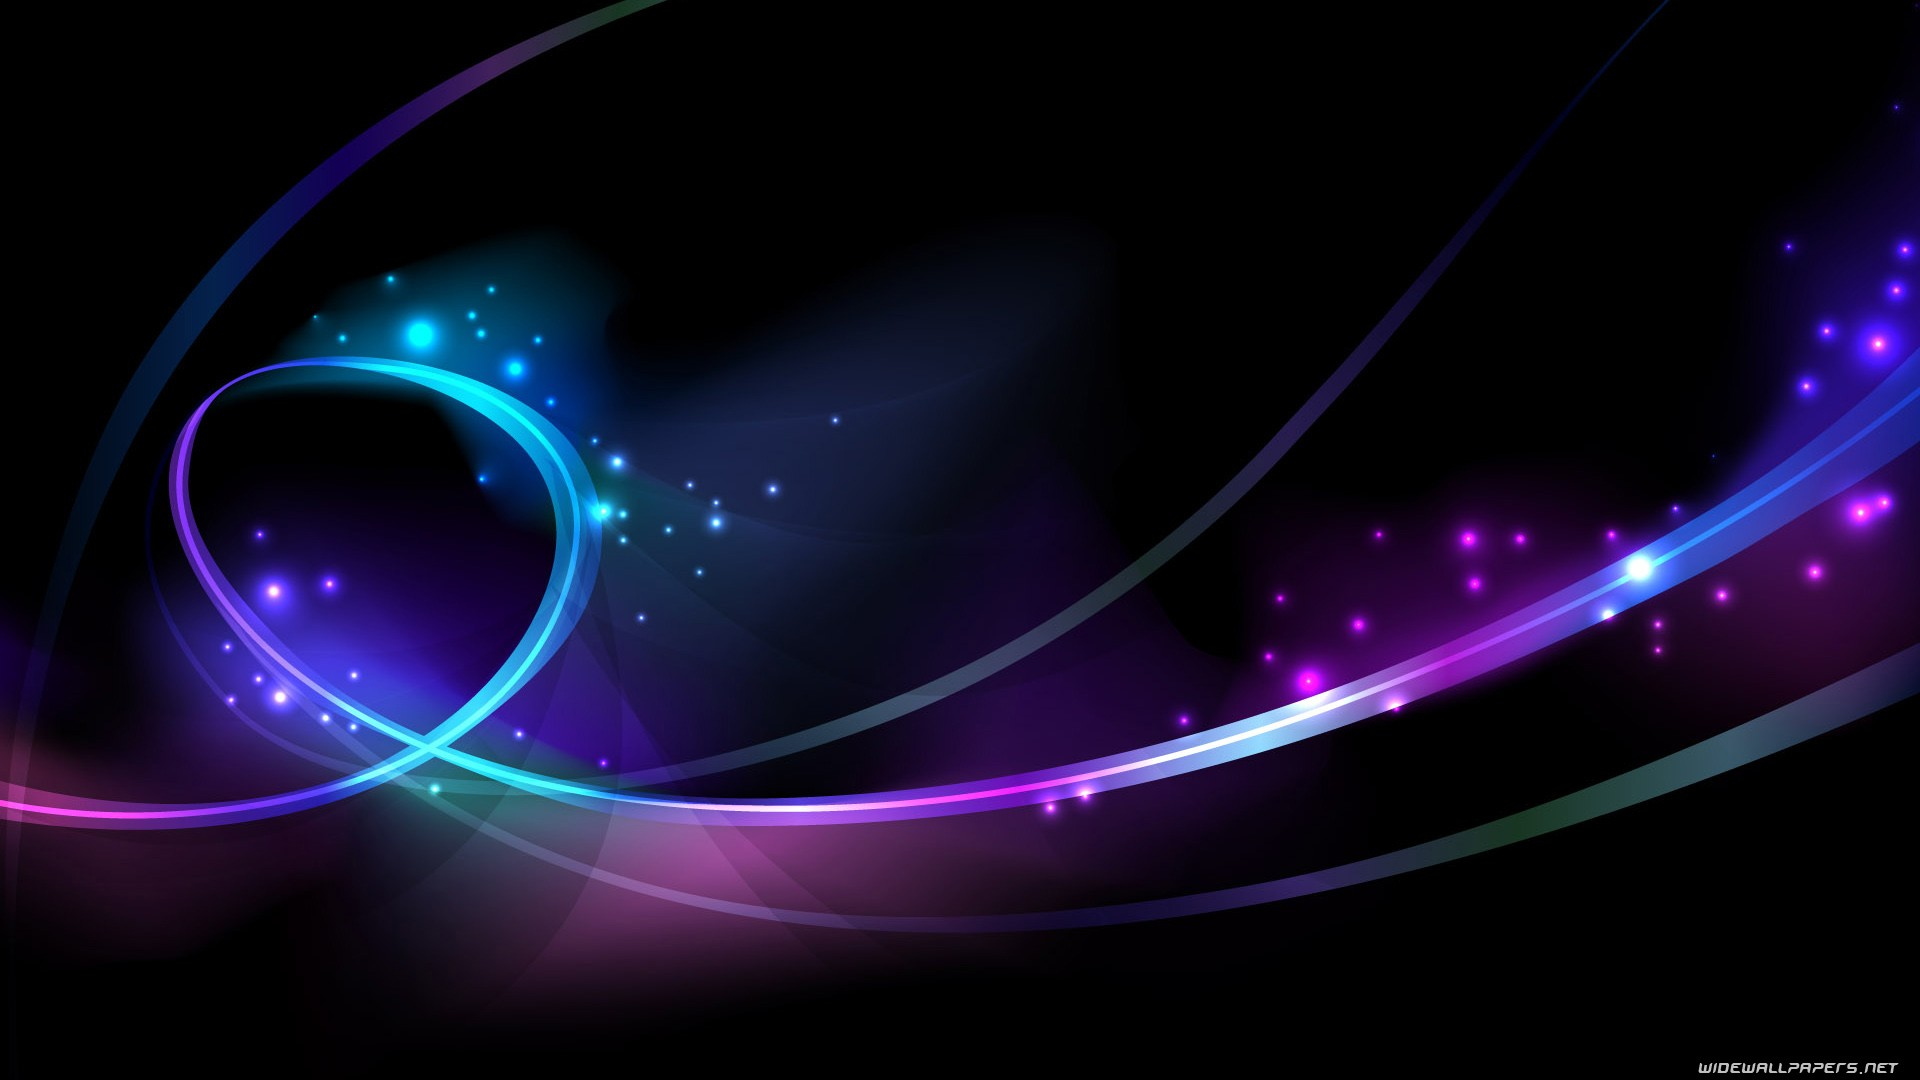 Abstract Wallpaper 1920x1080 ·① Download Free Cool Full HD